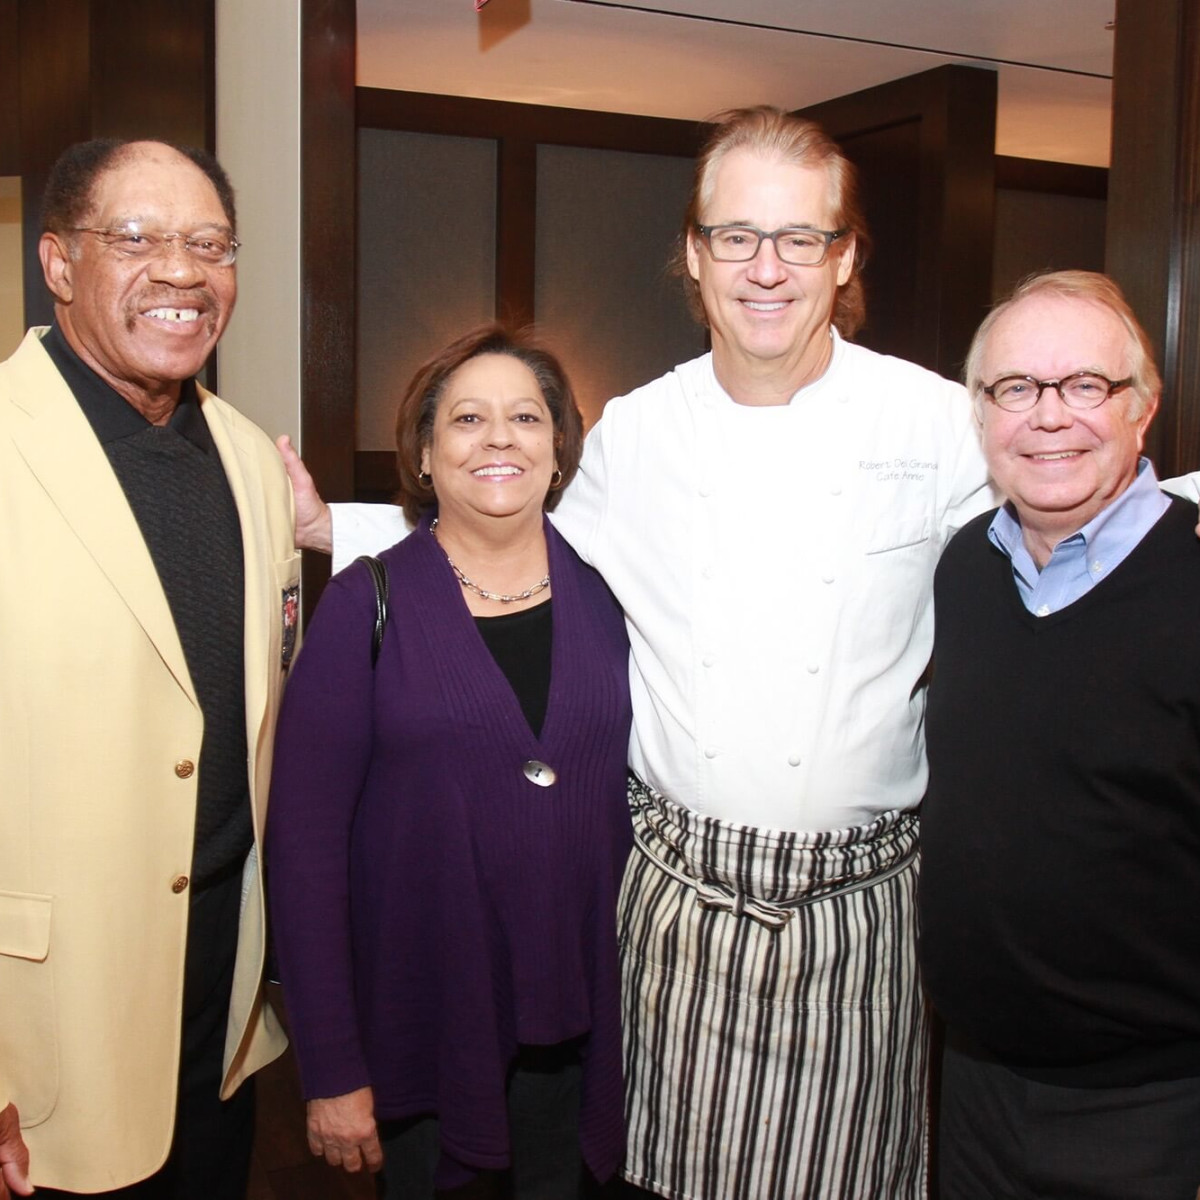 Taste of NFL brunch preview, Elvin Bethea, Pat Bethea, Cafe Annie chef Robert Del Grande, Wayne Kostroski.